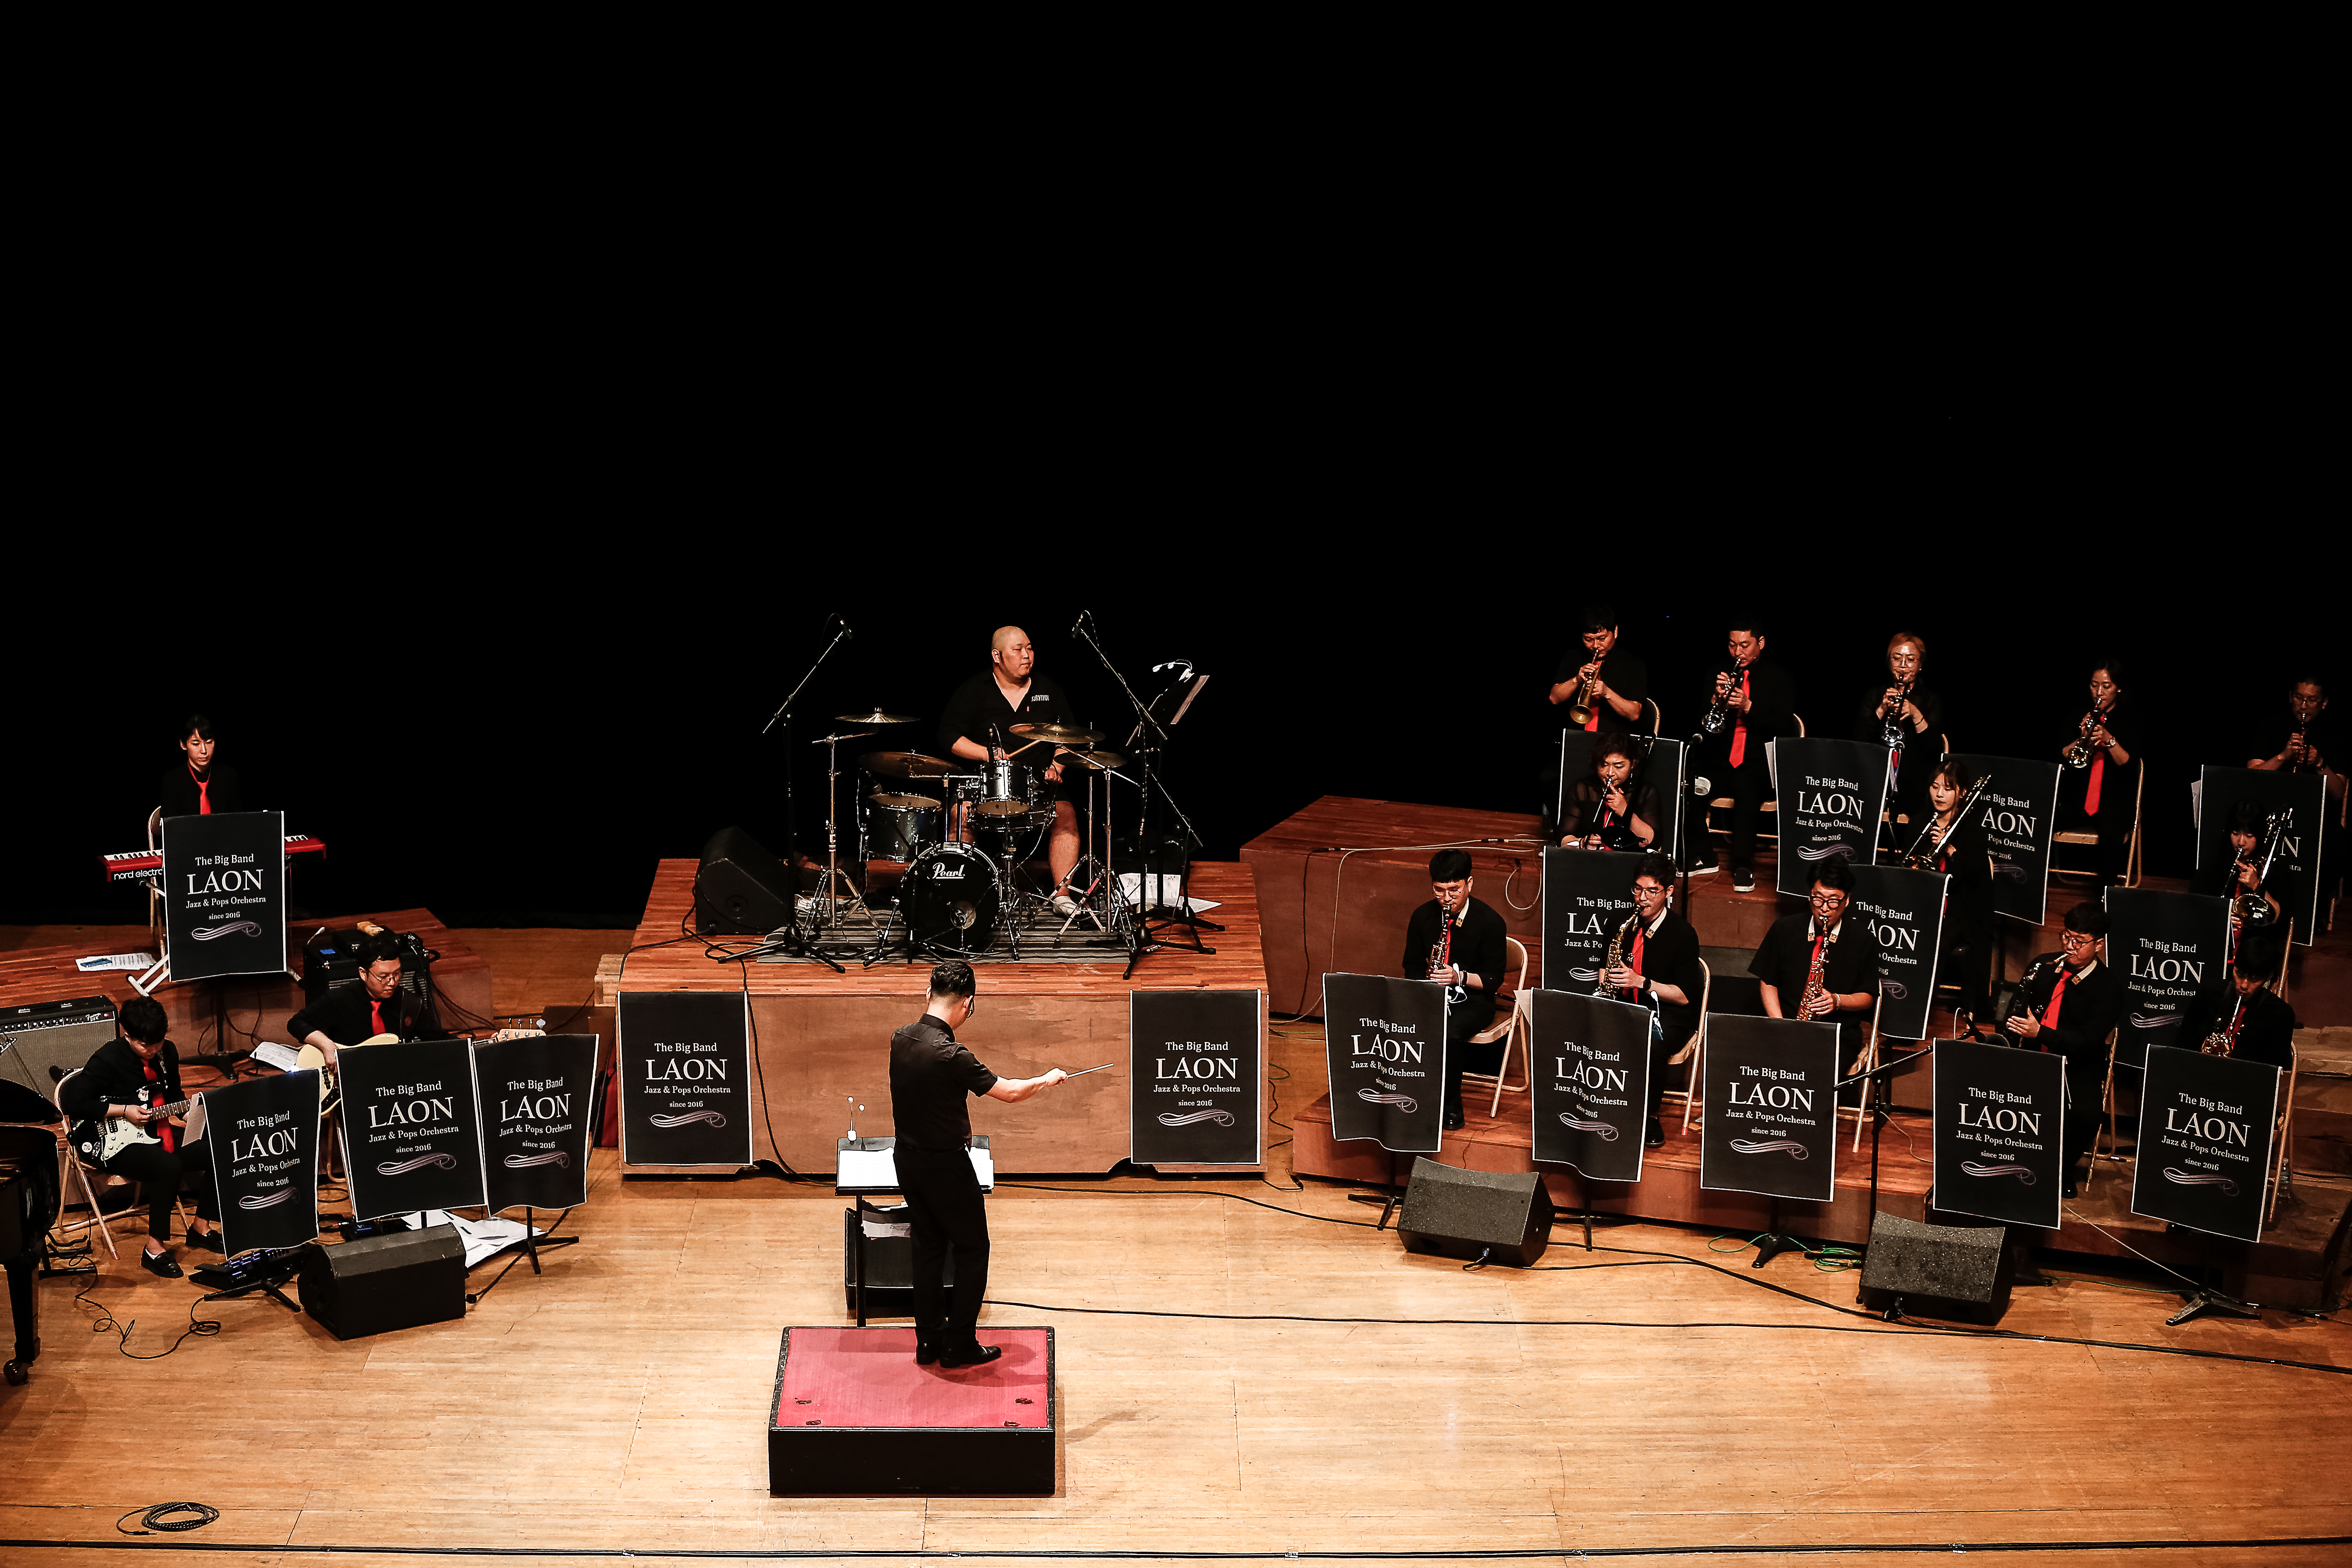 The Big Band 'LAON'